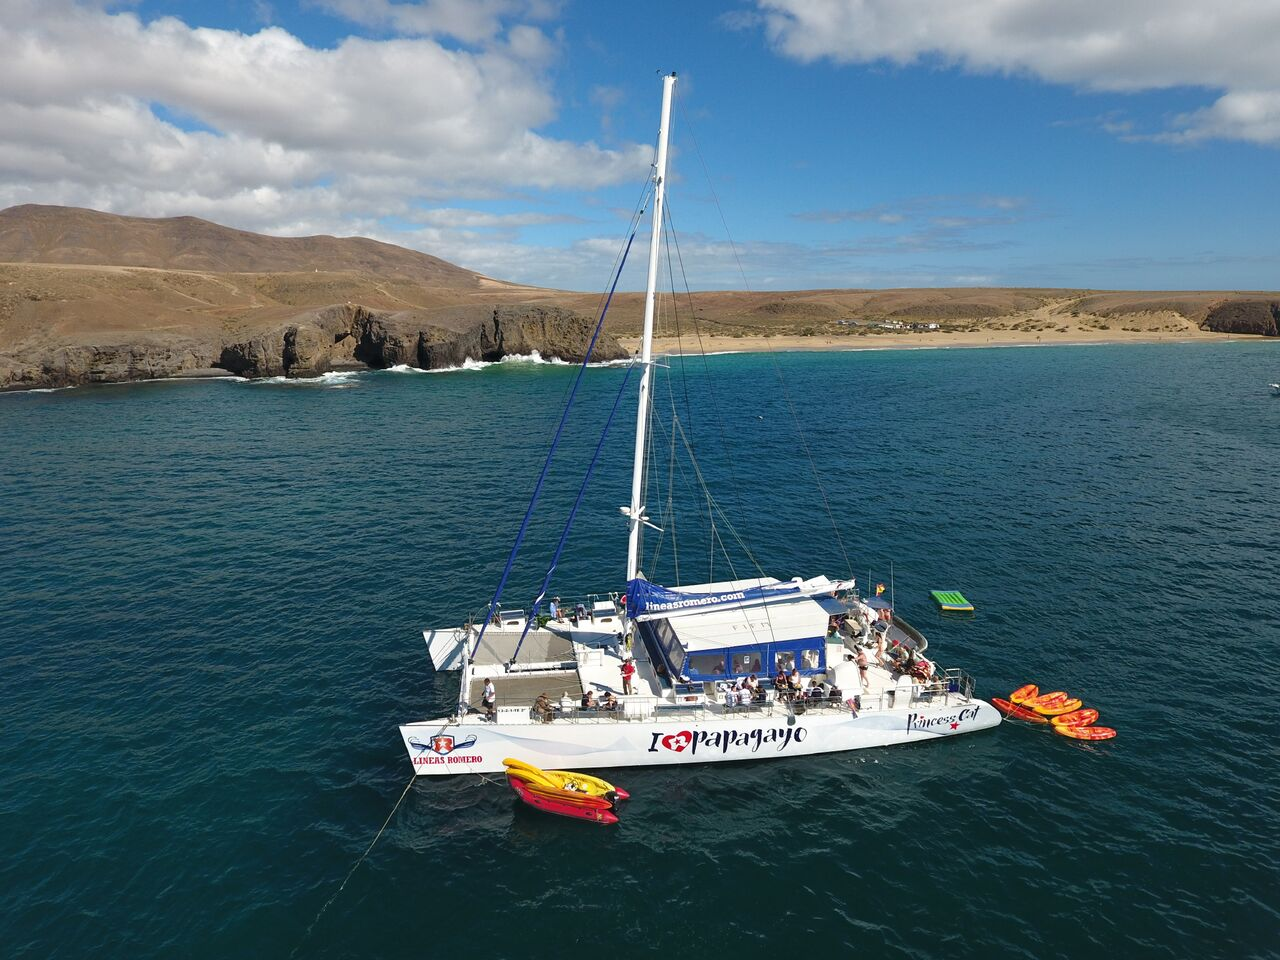 water-sports-catamaran-papagayo